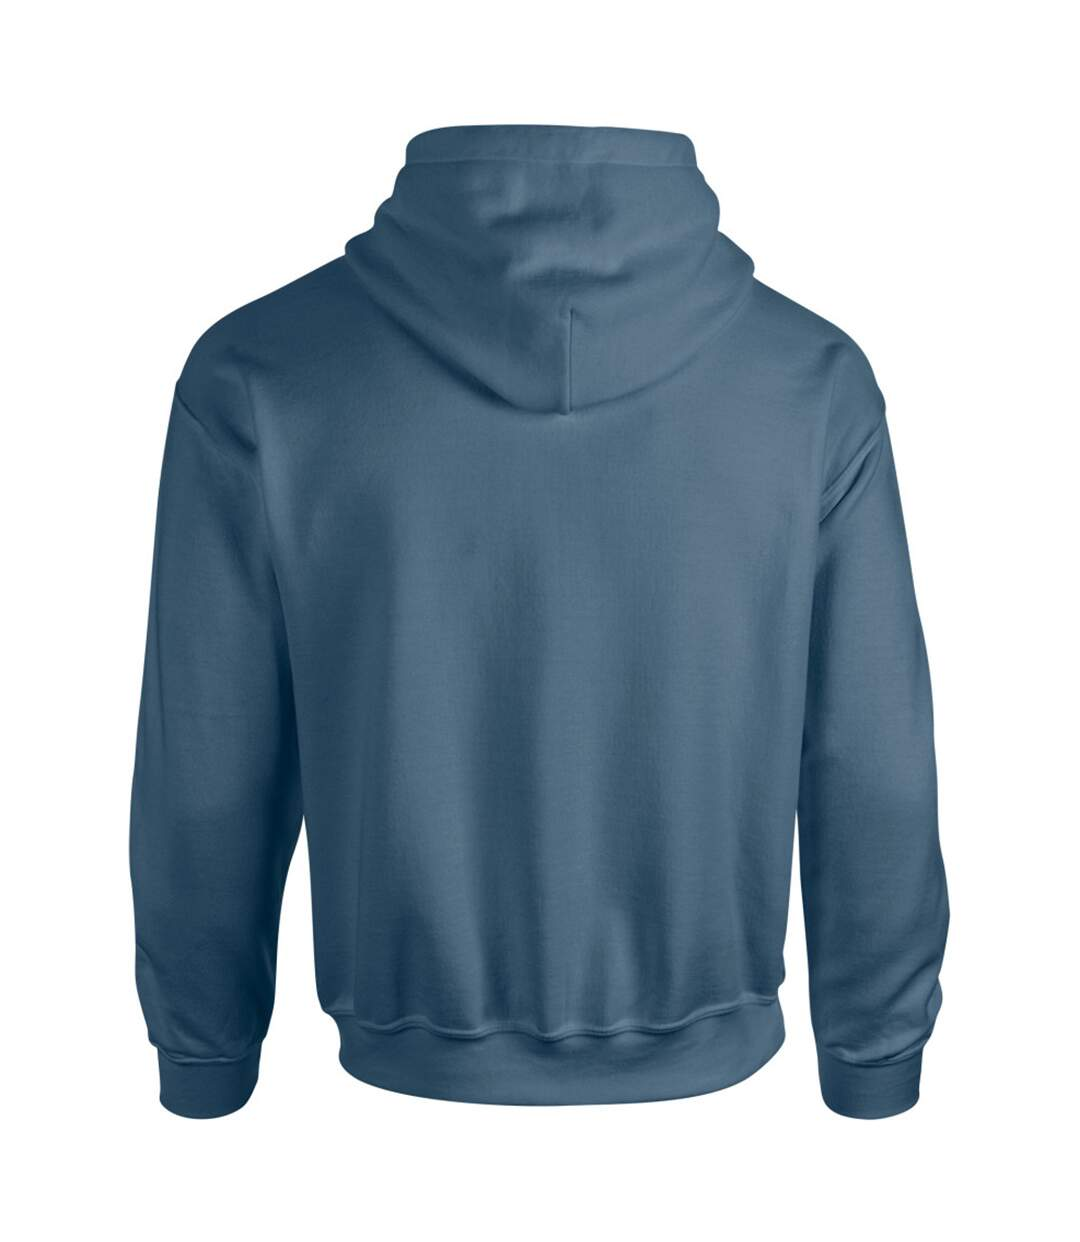 Gildan Heavy Blend Adult Unisex Hooded Sweatshirt / Hoodie (Light Blue) - UTBC468